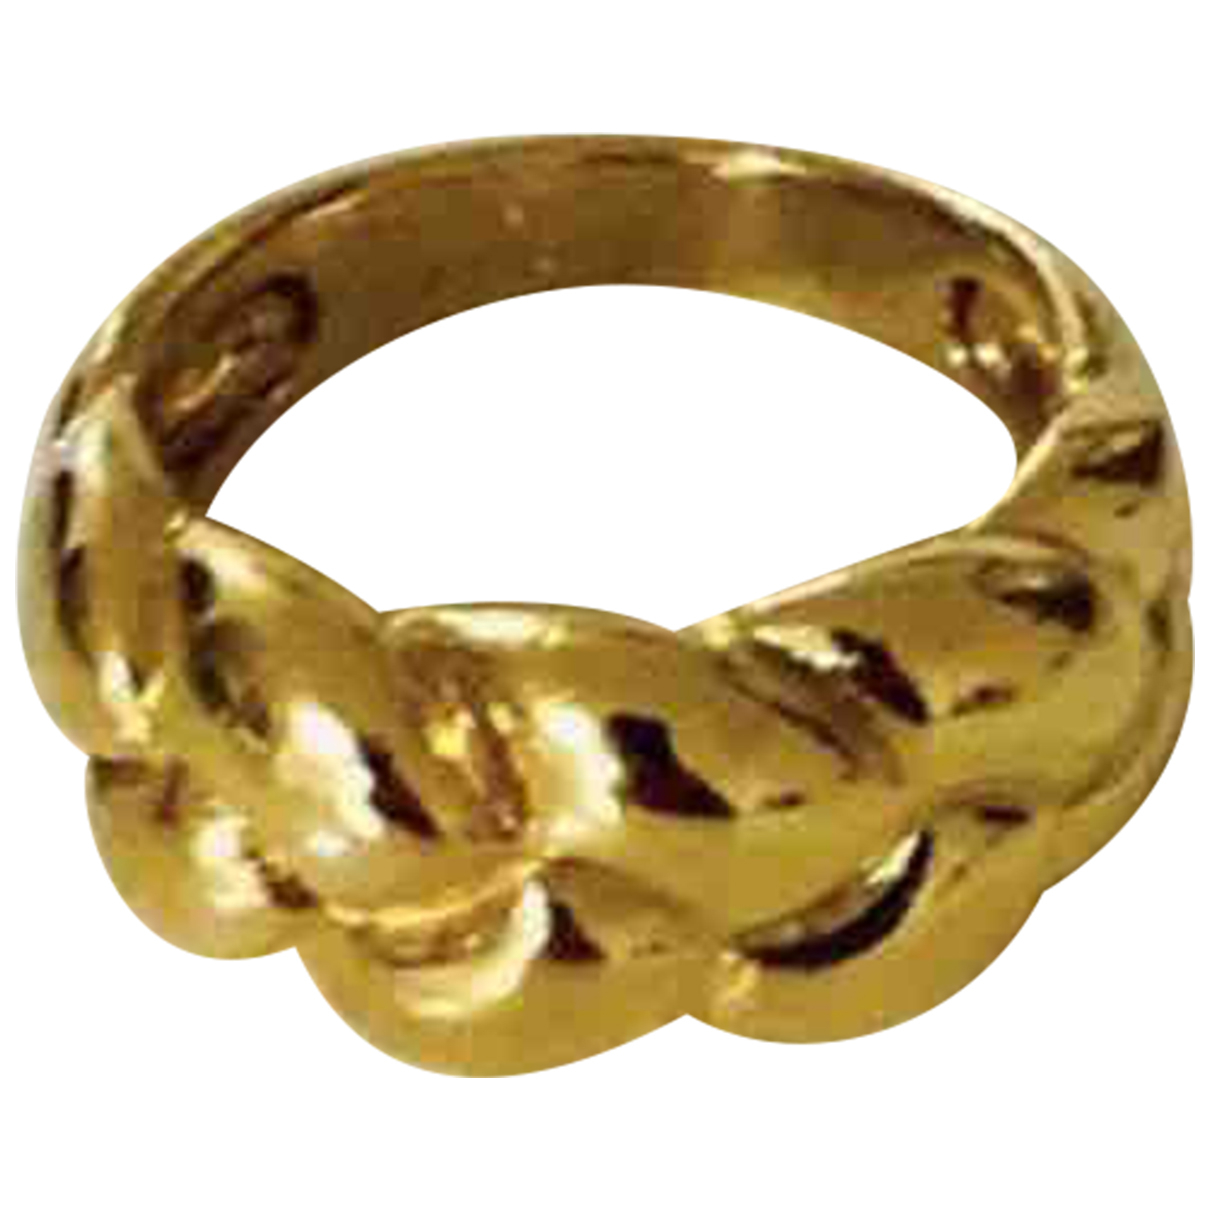 Van Cleef & Arpels N Gold Yellow gold ring for Women 9 US